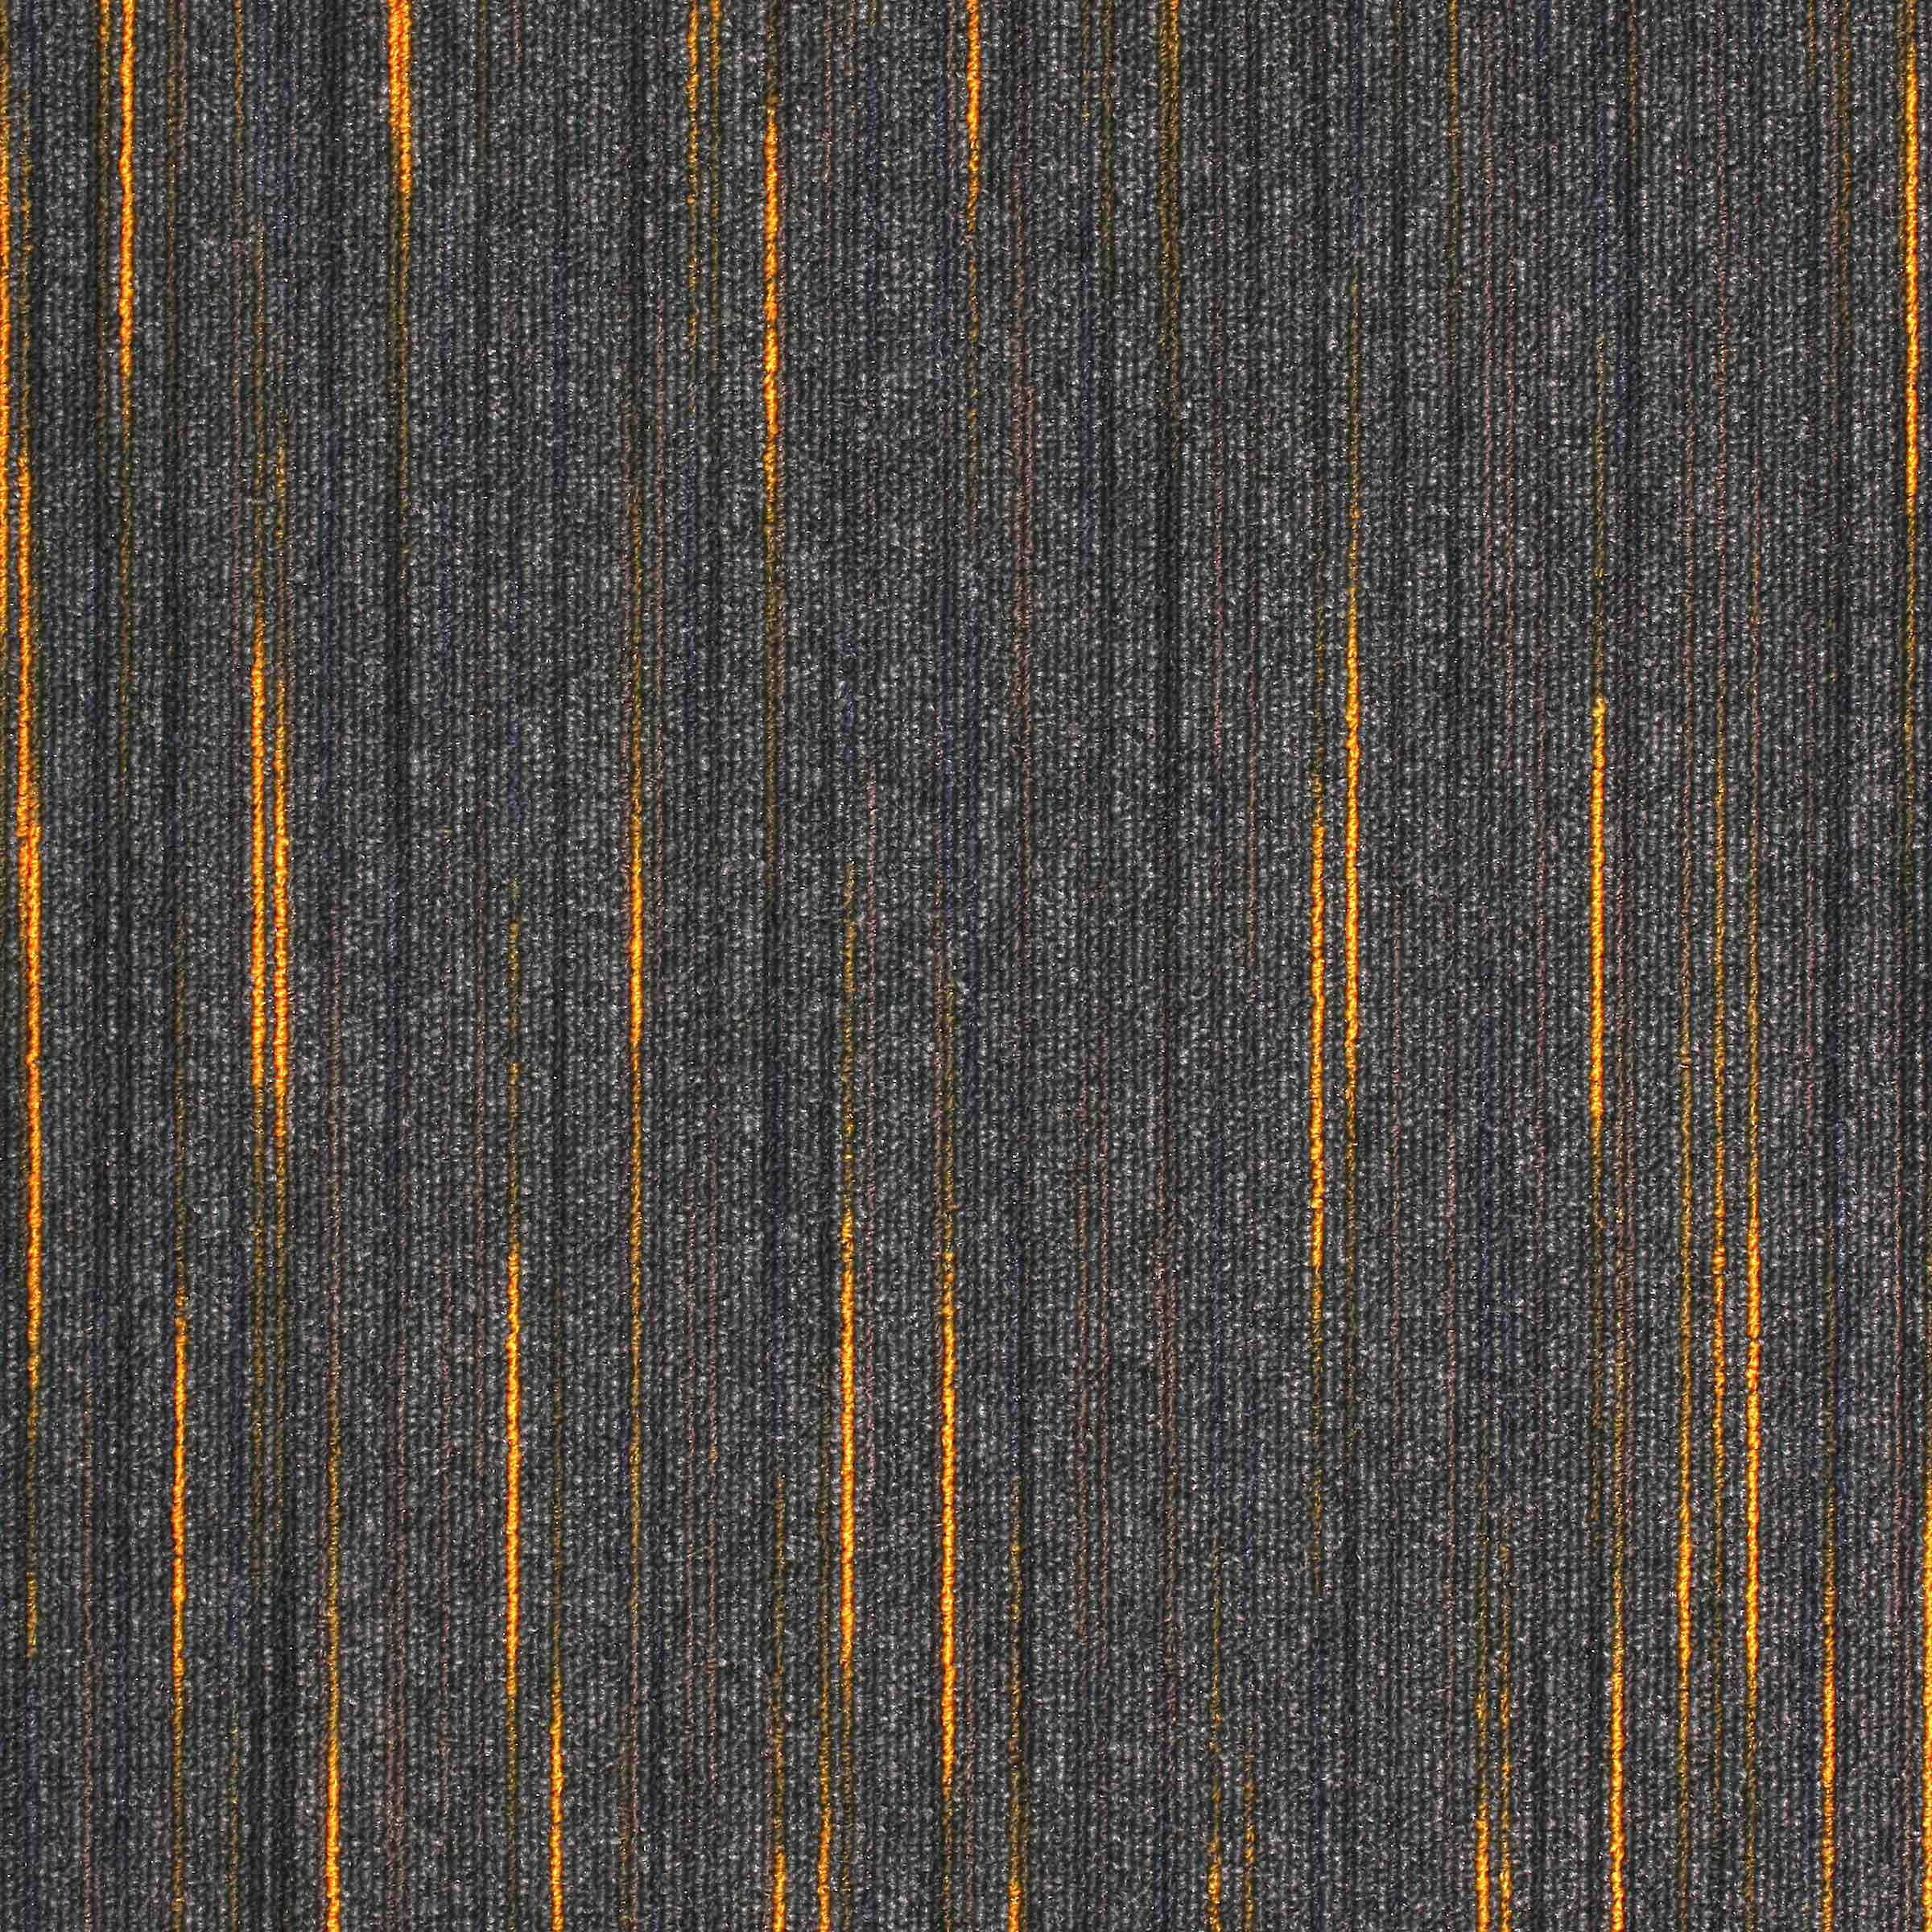 Strobe | Force, 2605 | Paragon Carpet Tiles | Commercial Carpet Tiles